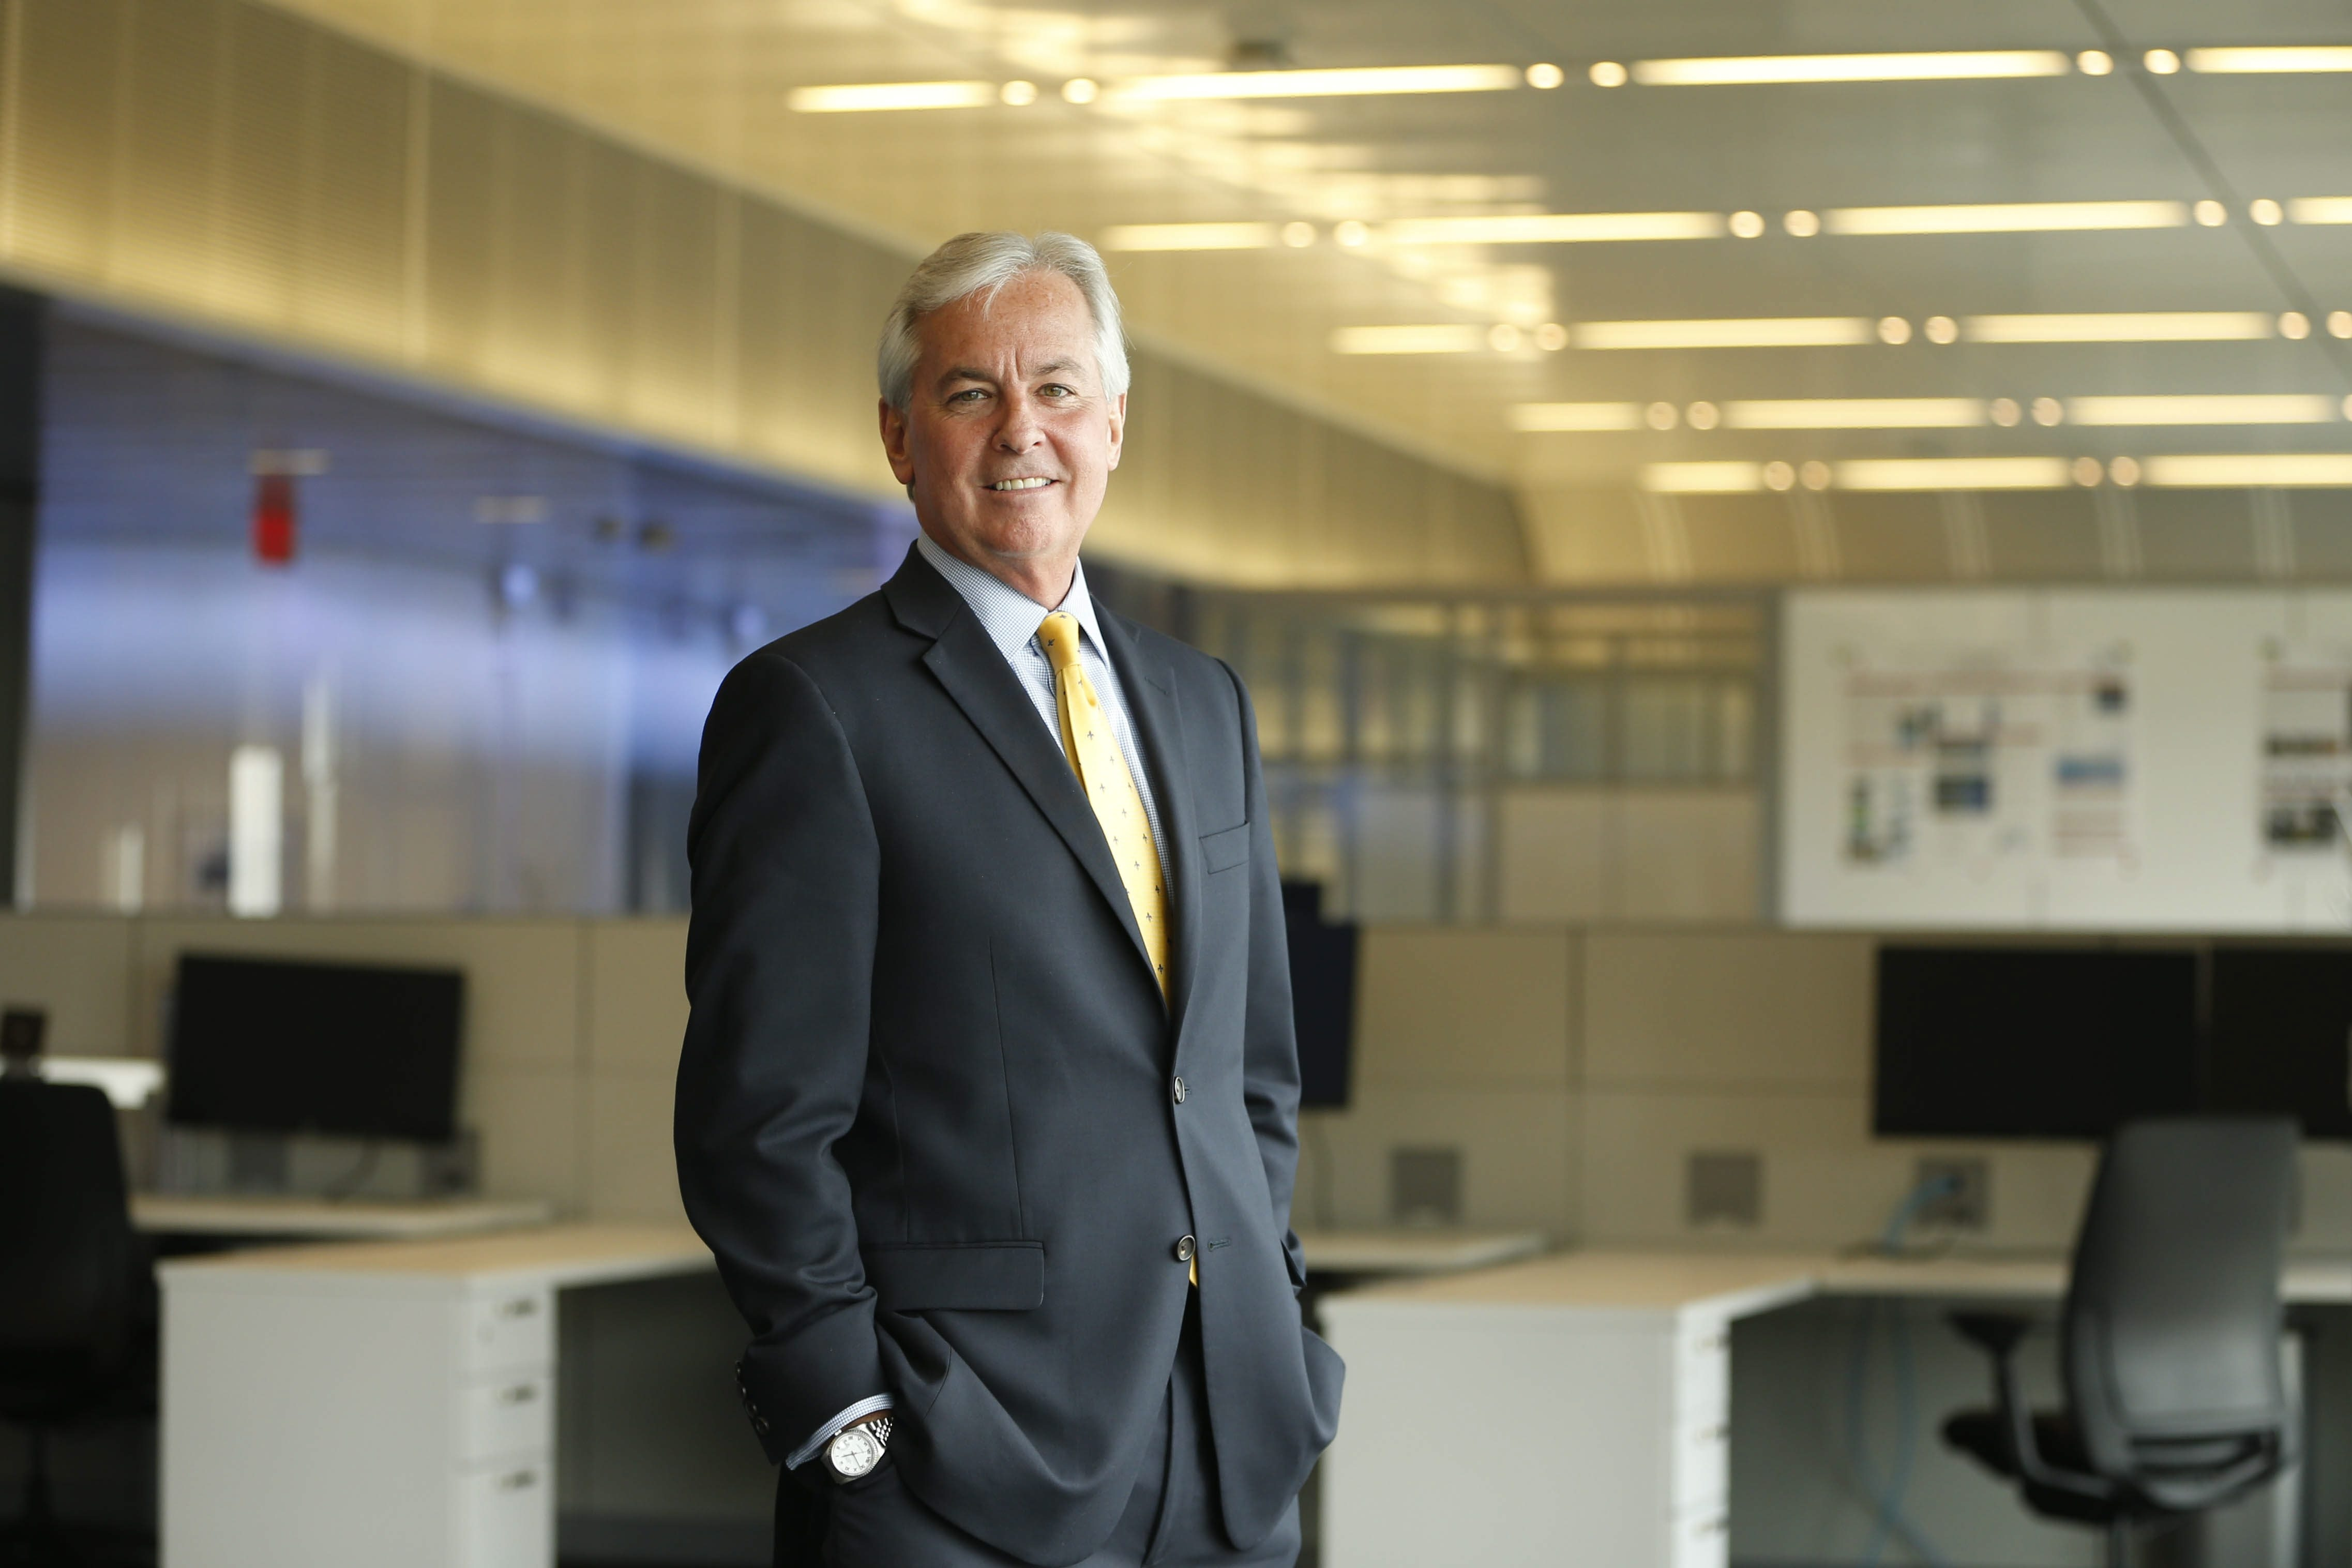 Thomas P. Quinn, strategic advisor and former CEO of Infonaut, at the Jacobs Institute where his company has an office.  (Derek Gee/Buffalo News)